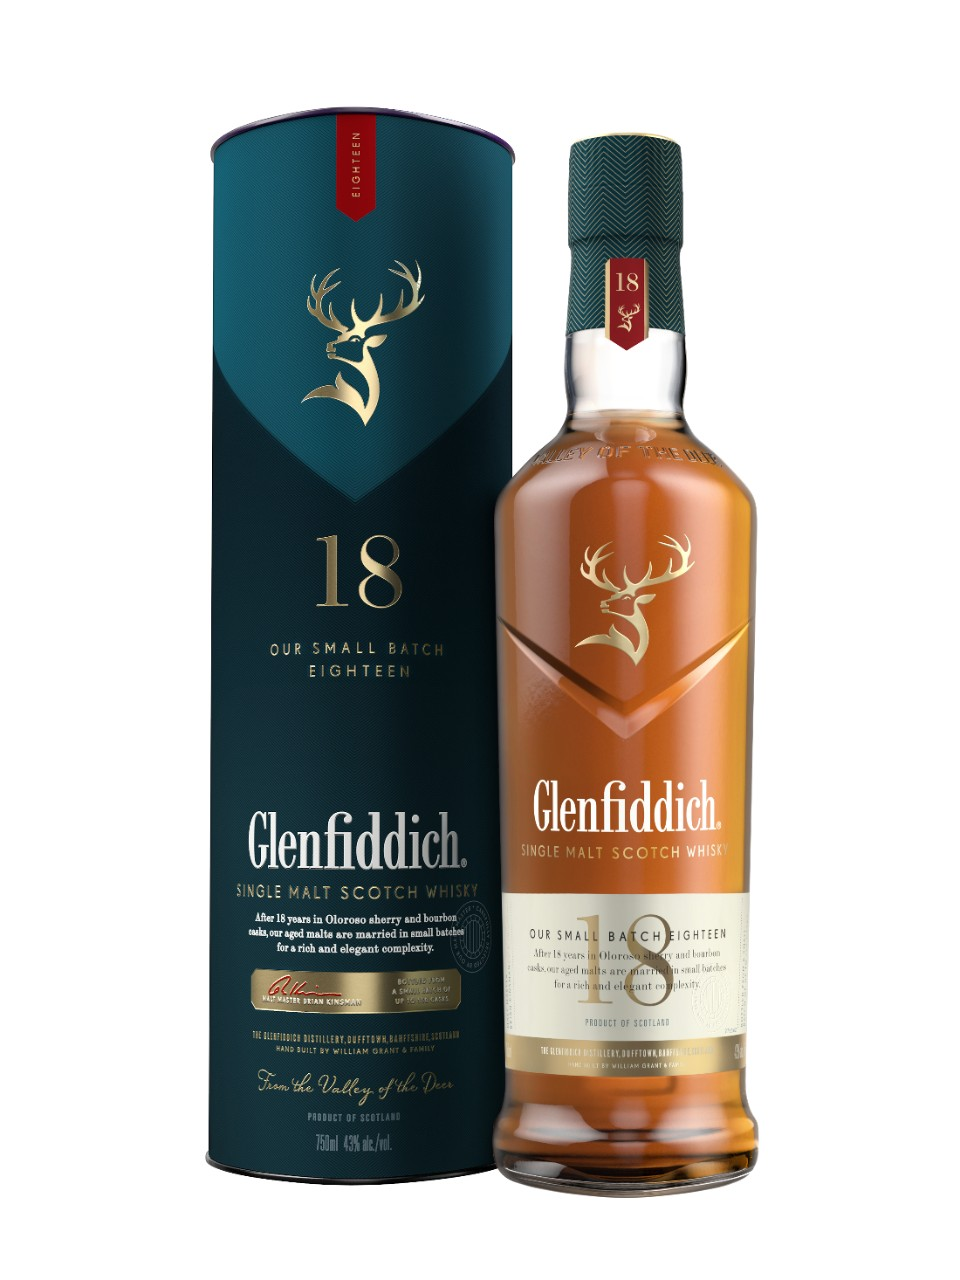 Glenfiddich 18 Year Old Single Malt Scotch Whisky from LCBO